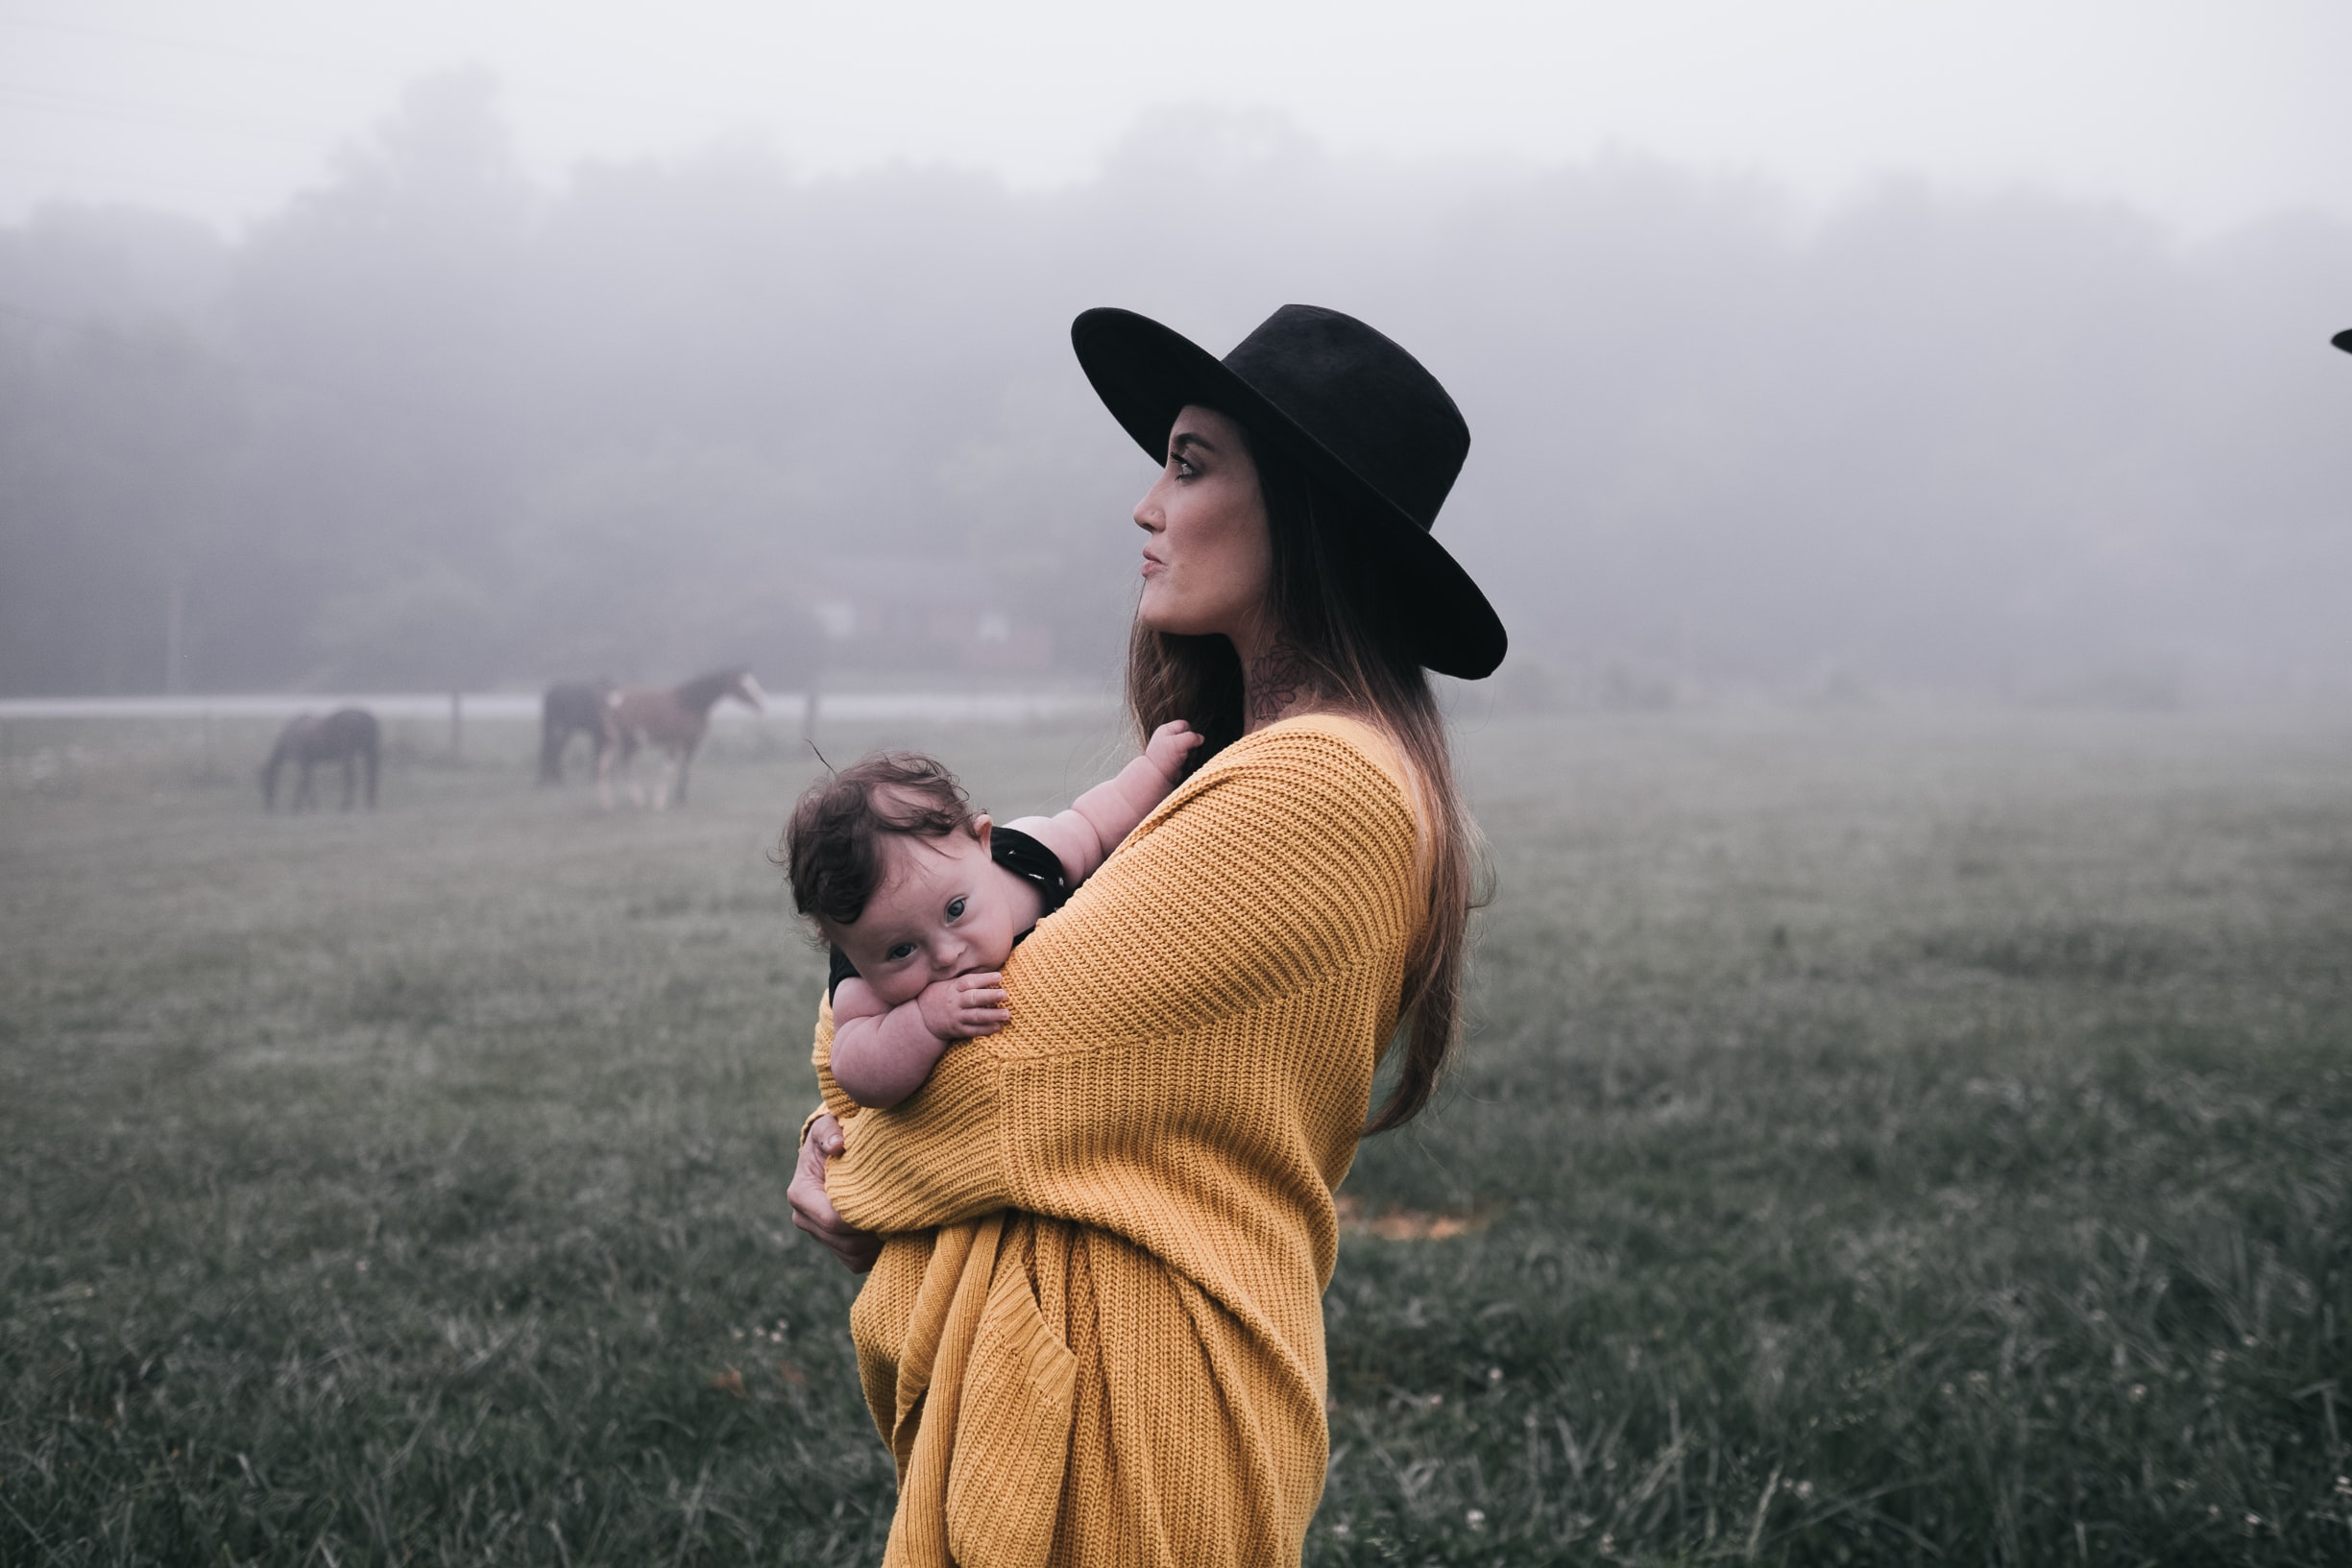 woman standing in green grass field while carrying baby